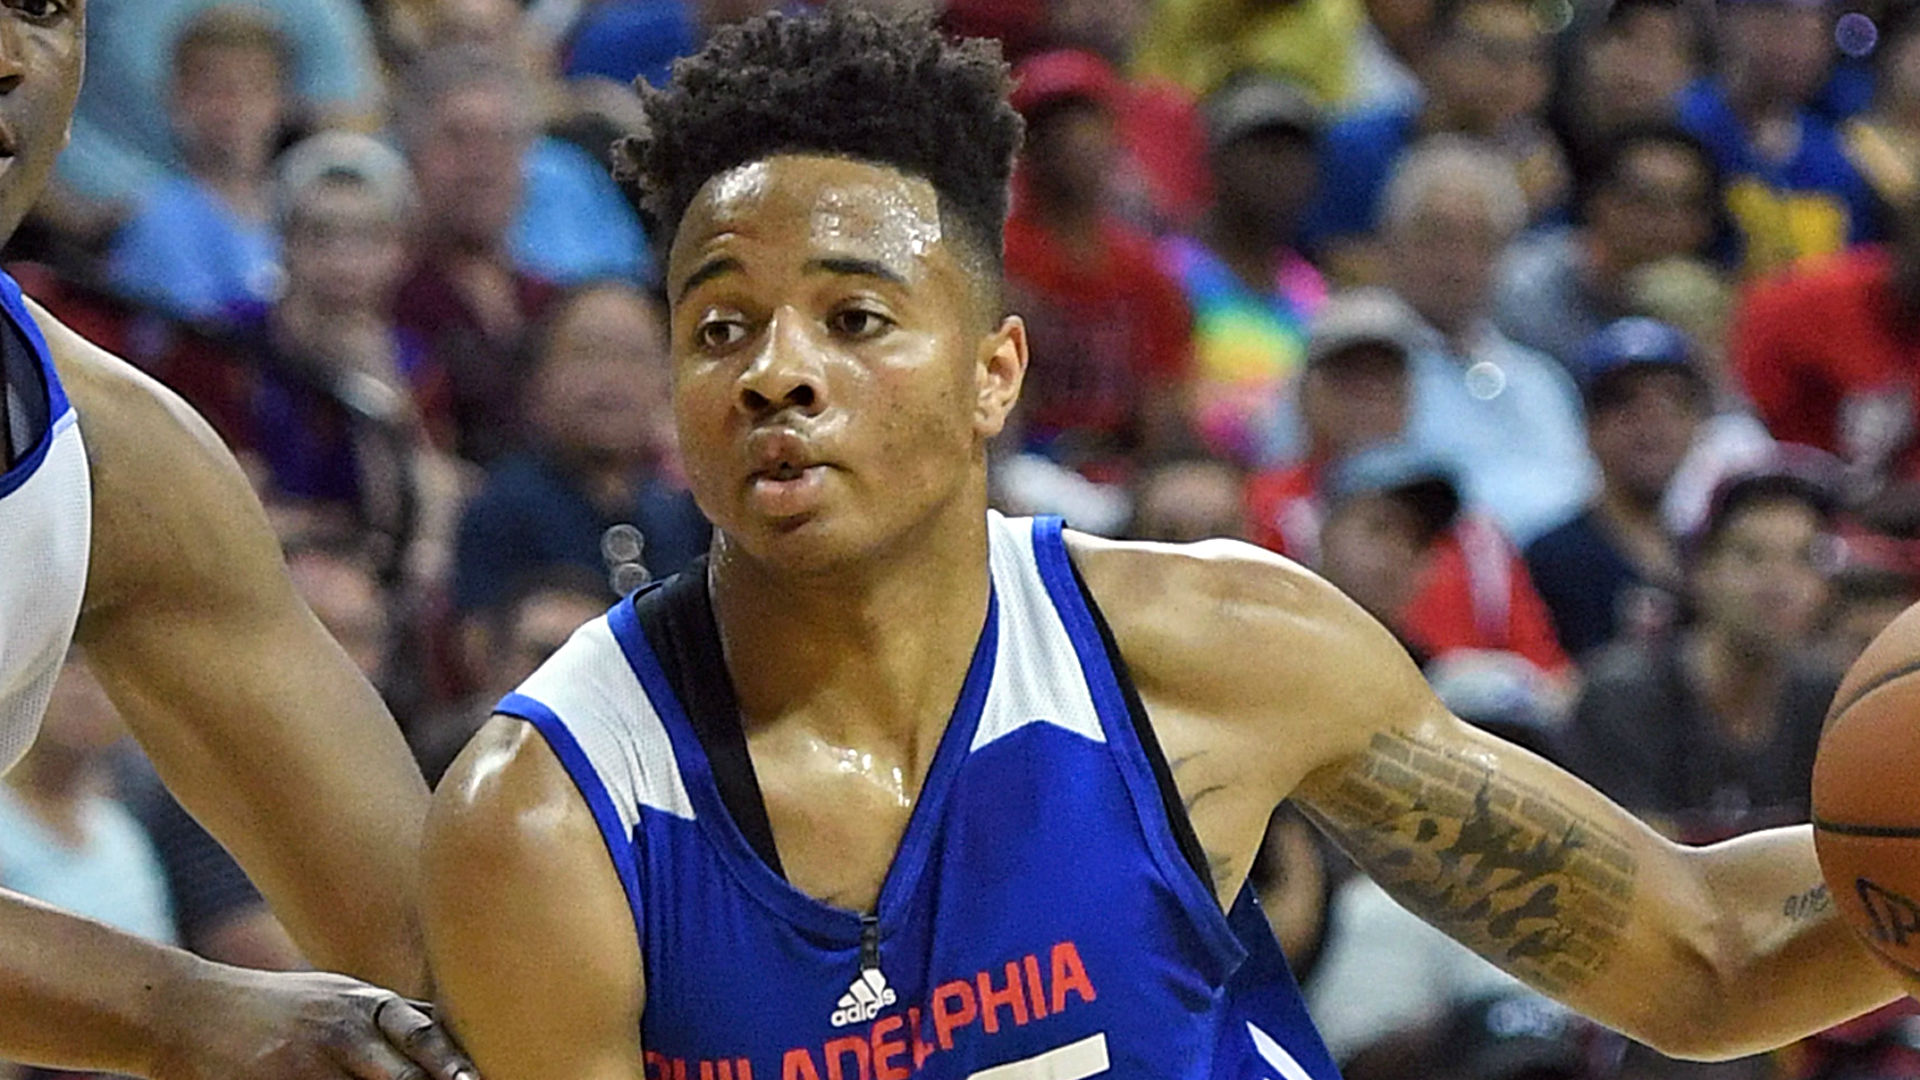 Sixers rookie Markelle Fultz helped off floor after rolling ankle